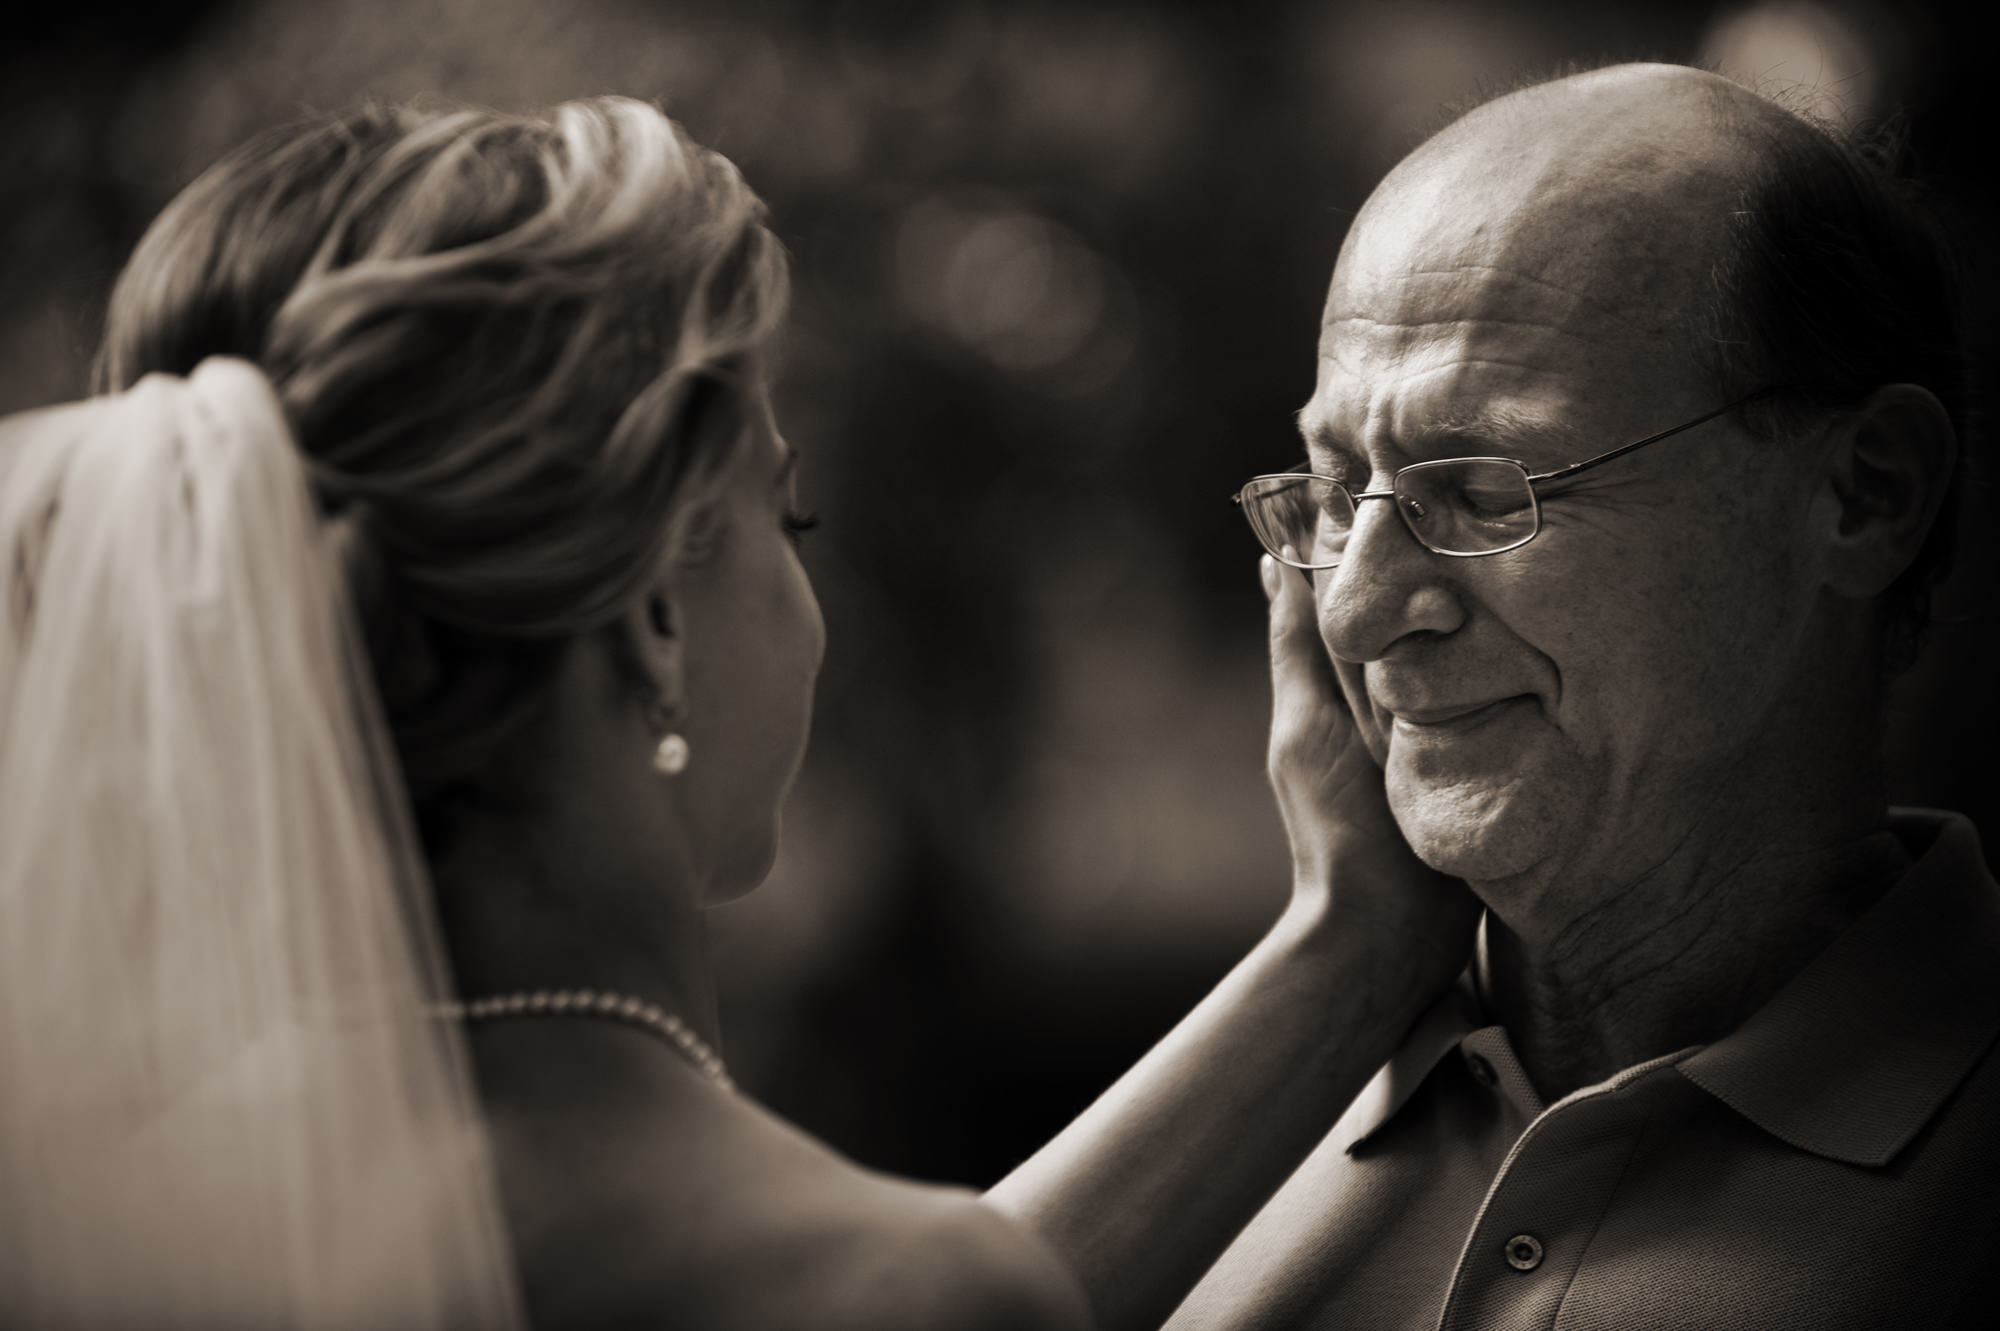 Bride touching elder's emotional face photo by Cliff Mautner